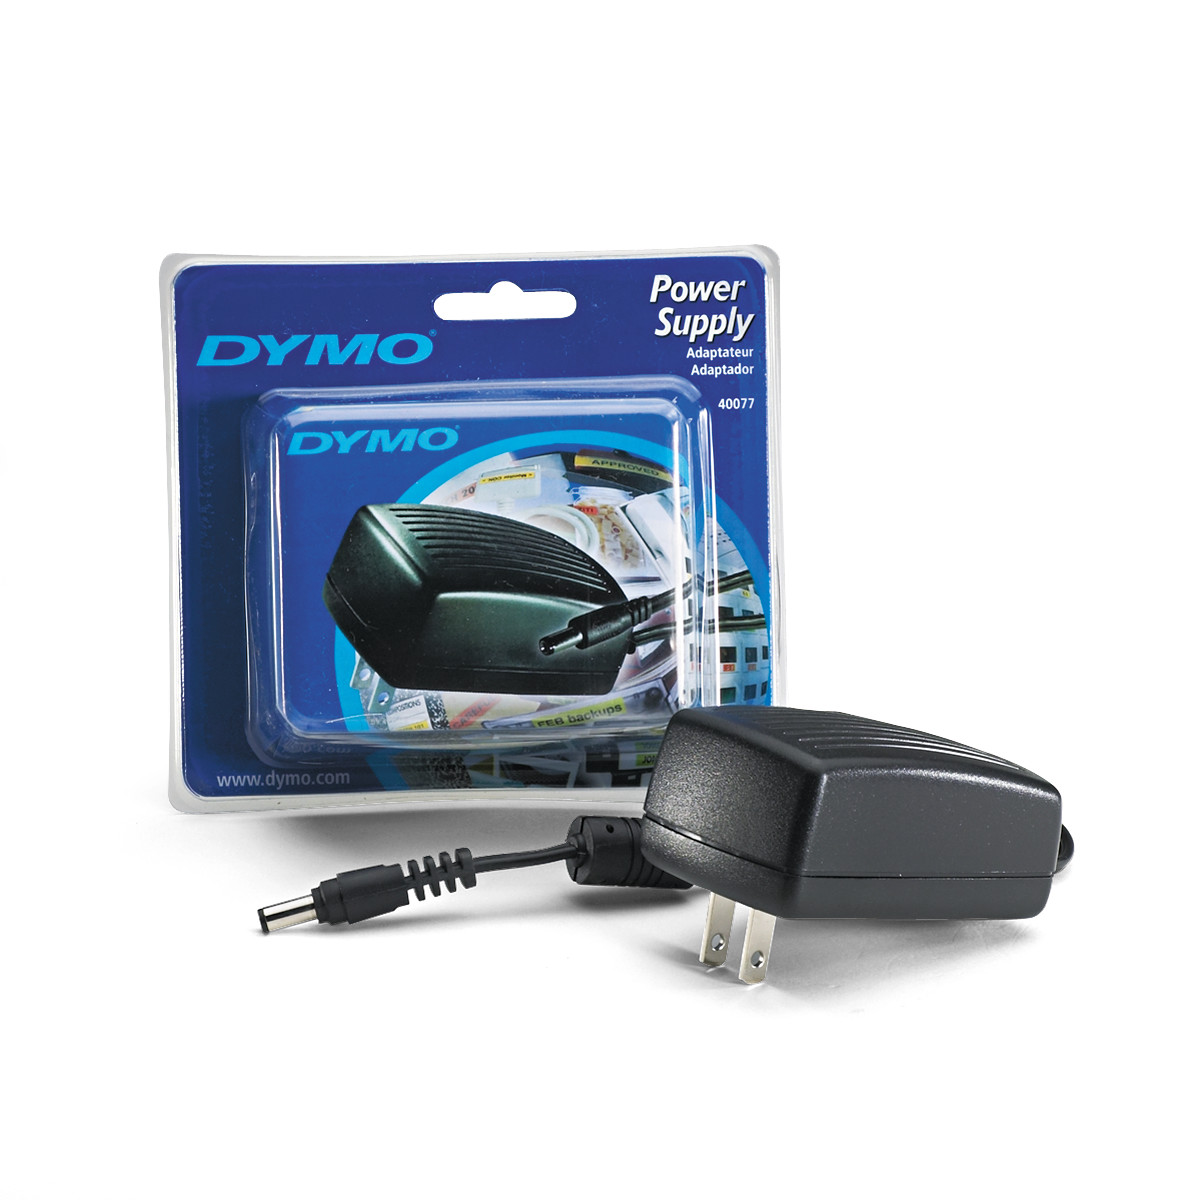 DYMO AC Adapter for DYMO ExecuLabel, LabelMANAGER, LabelPOINT Label Makers by DYMO